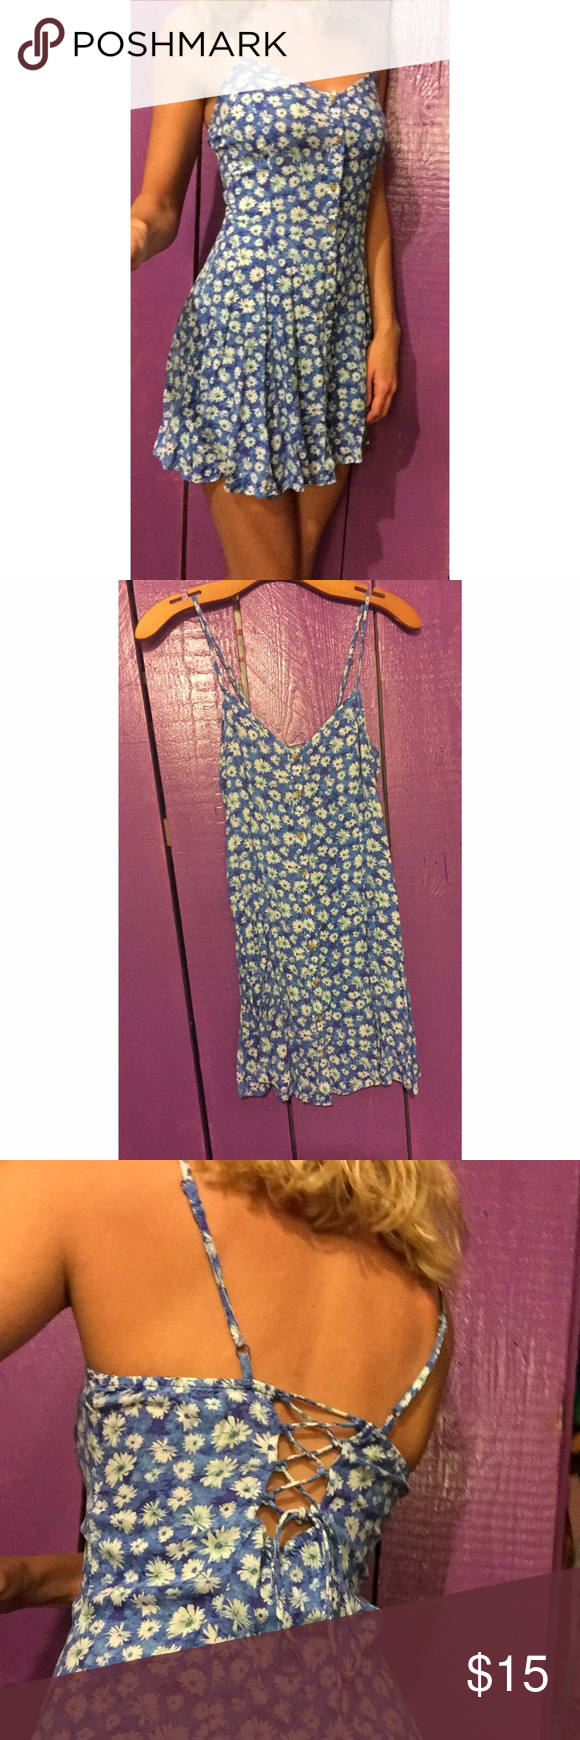 """Floral Button Up Dress This is an incredibly flattering dress! The tie back allows you to loosen it or tighten it at the top! Dress just a little too short for me (5'7""""). Worn only once! 100% viscose. Ask any questions! American Eagle Outfitters Dresses Mini"""